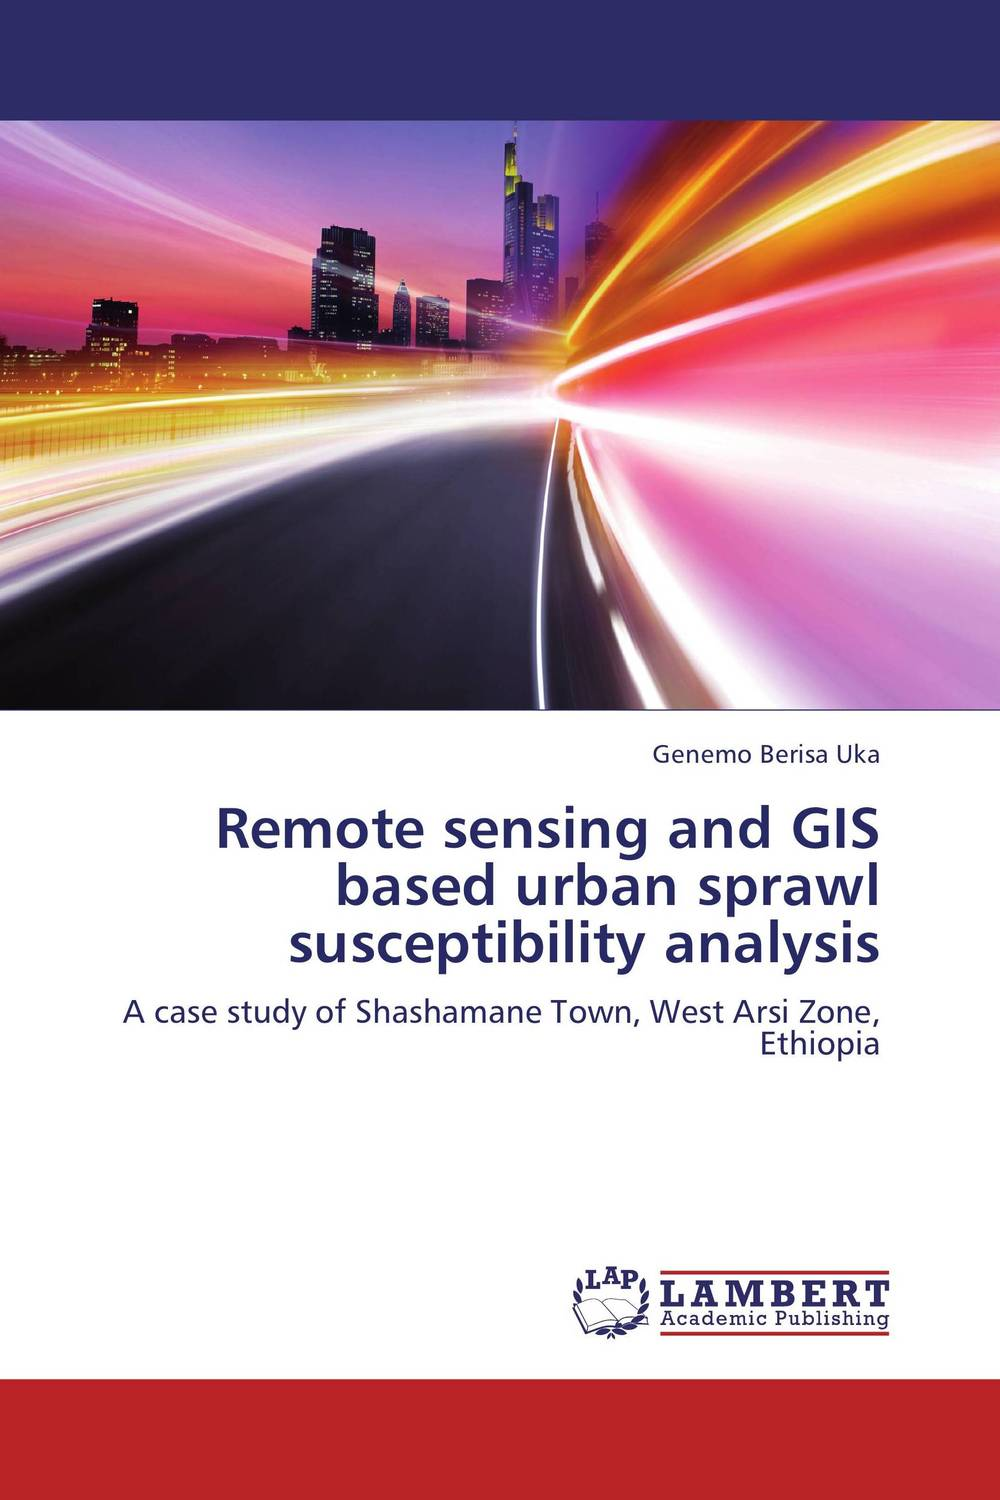 Remote sensing and GIS based urban sprawl susceptibility analysis